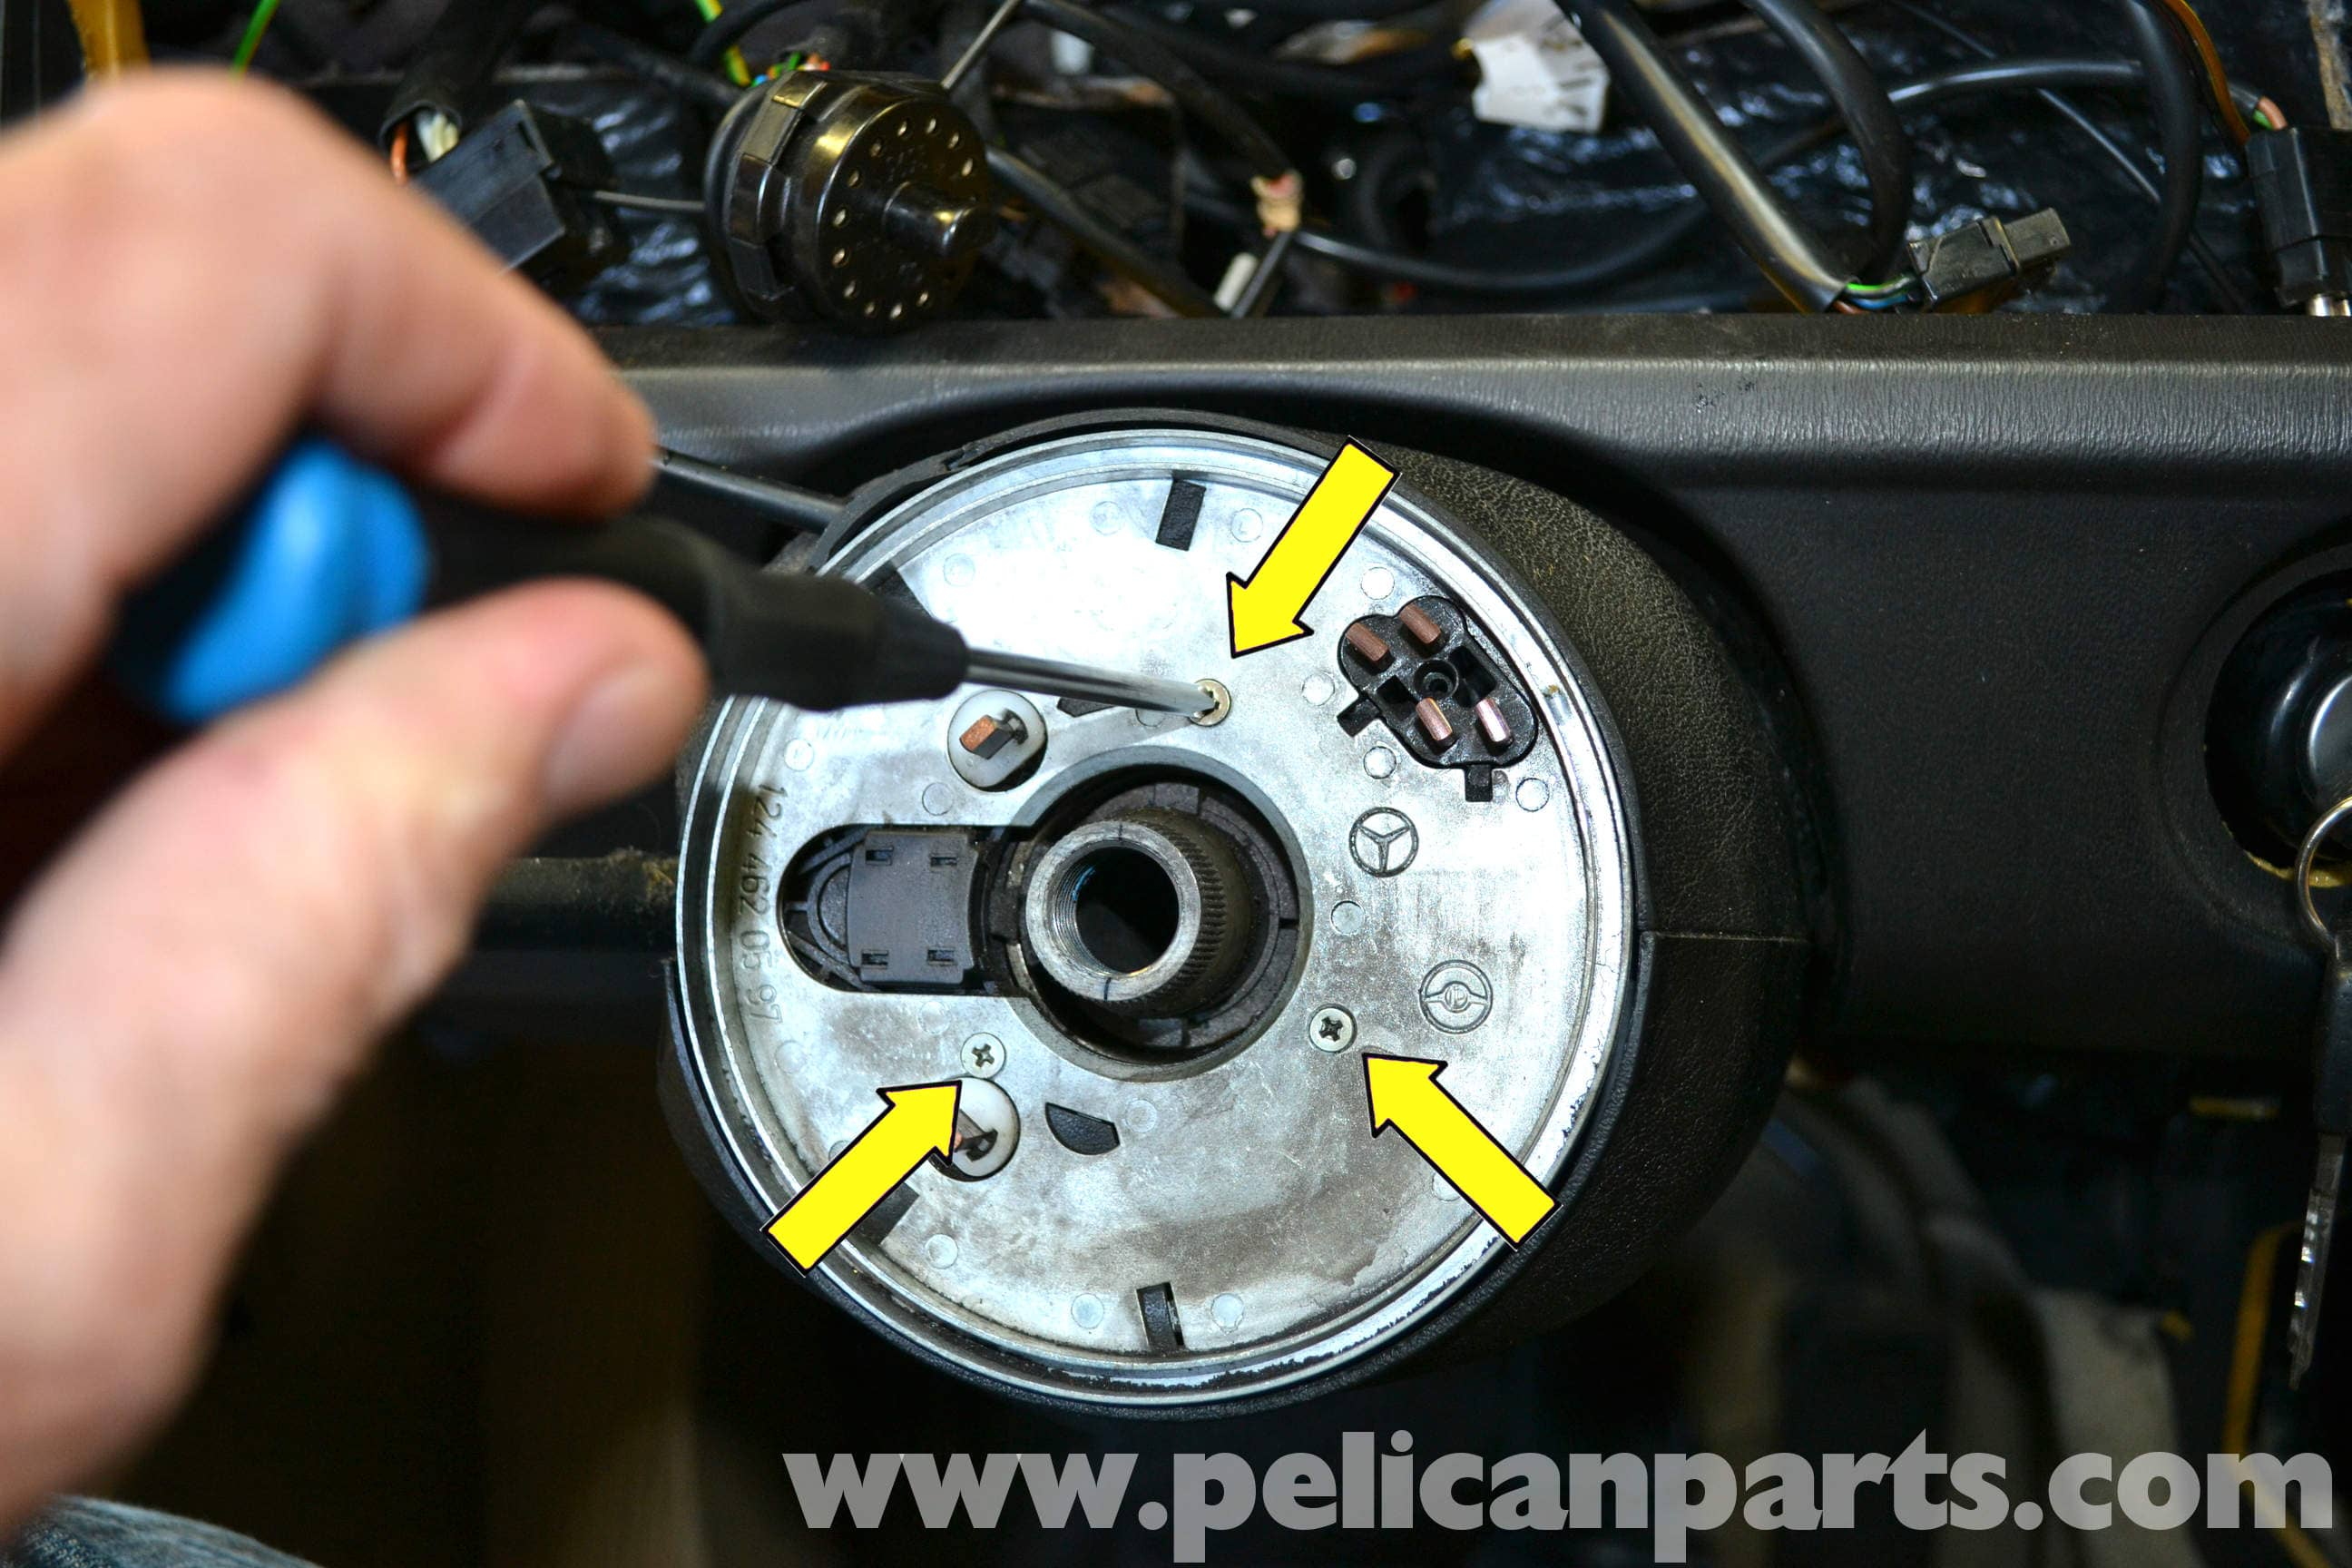 Mercedes-Benz 190E Ignition Switch and Lock Replacement